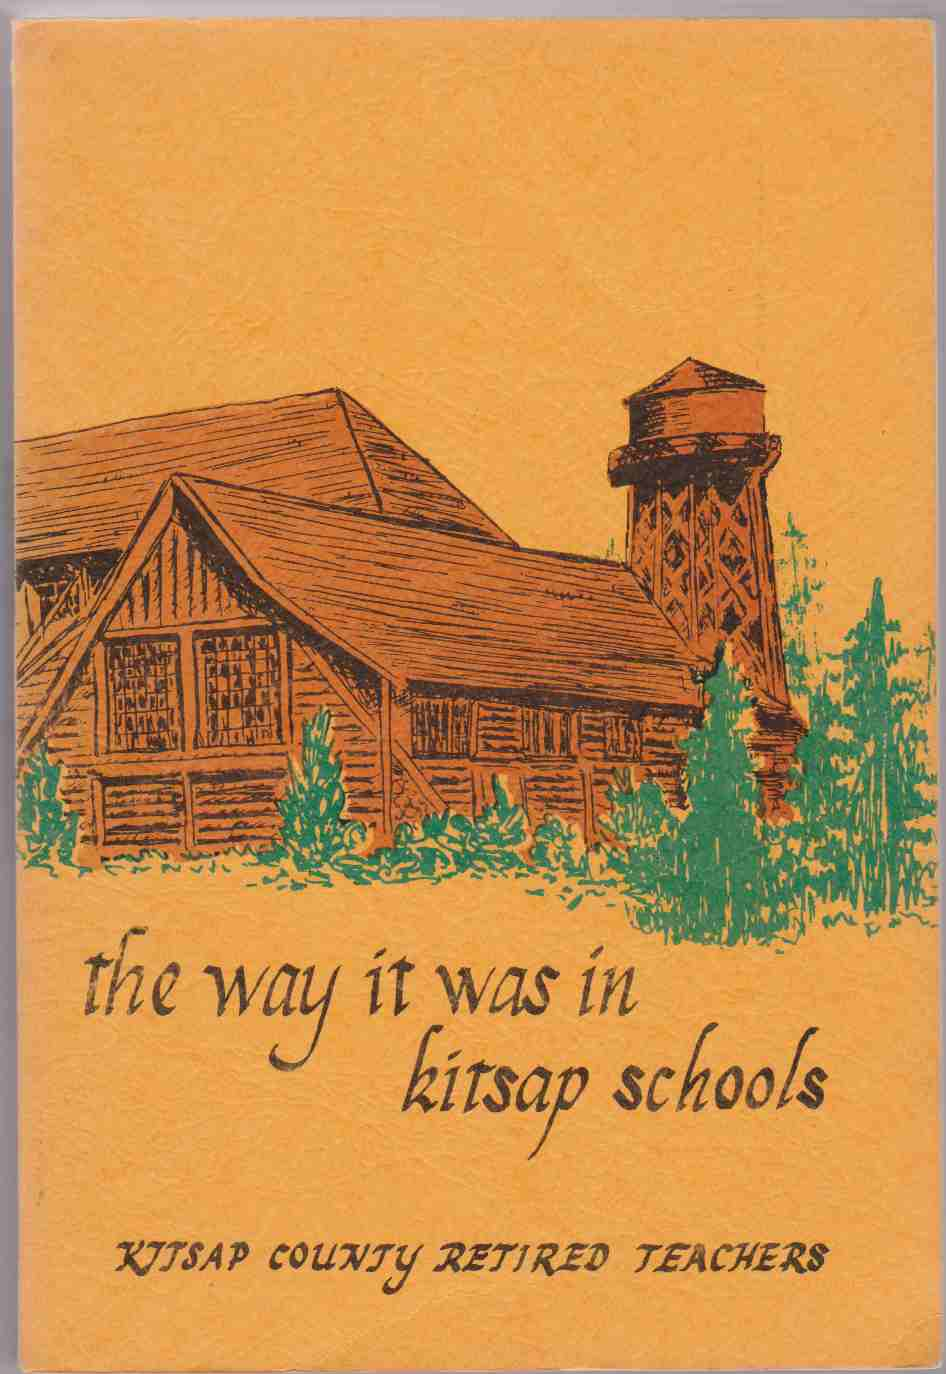 Image for THE WAY IT WAS IN KITSAP SCHOOLS Memoirs of School Days in Kitsap County